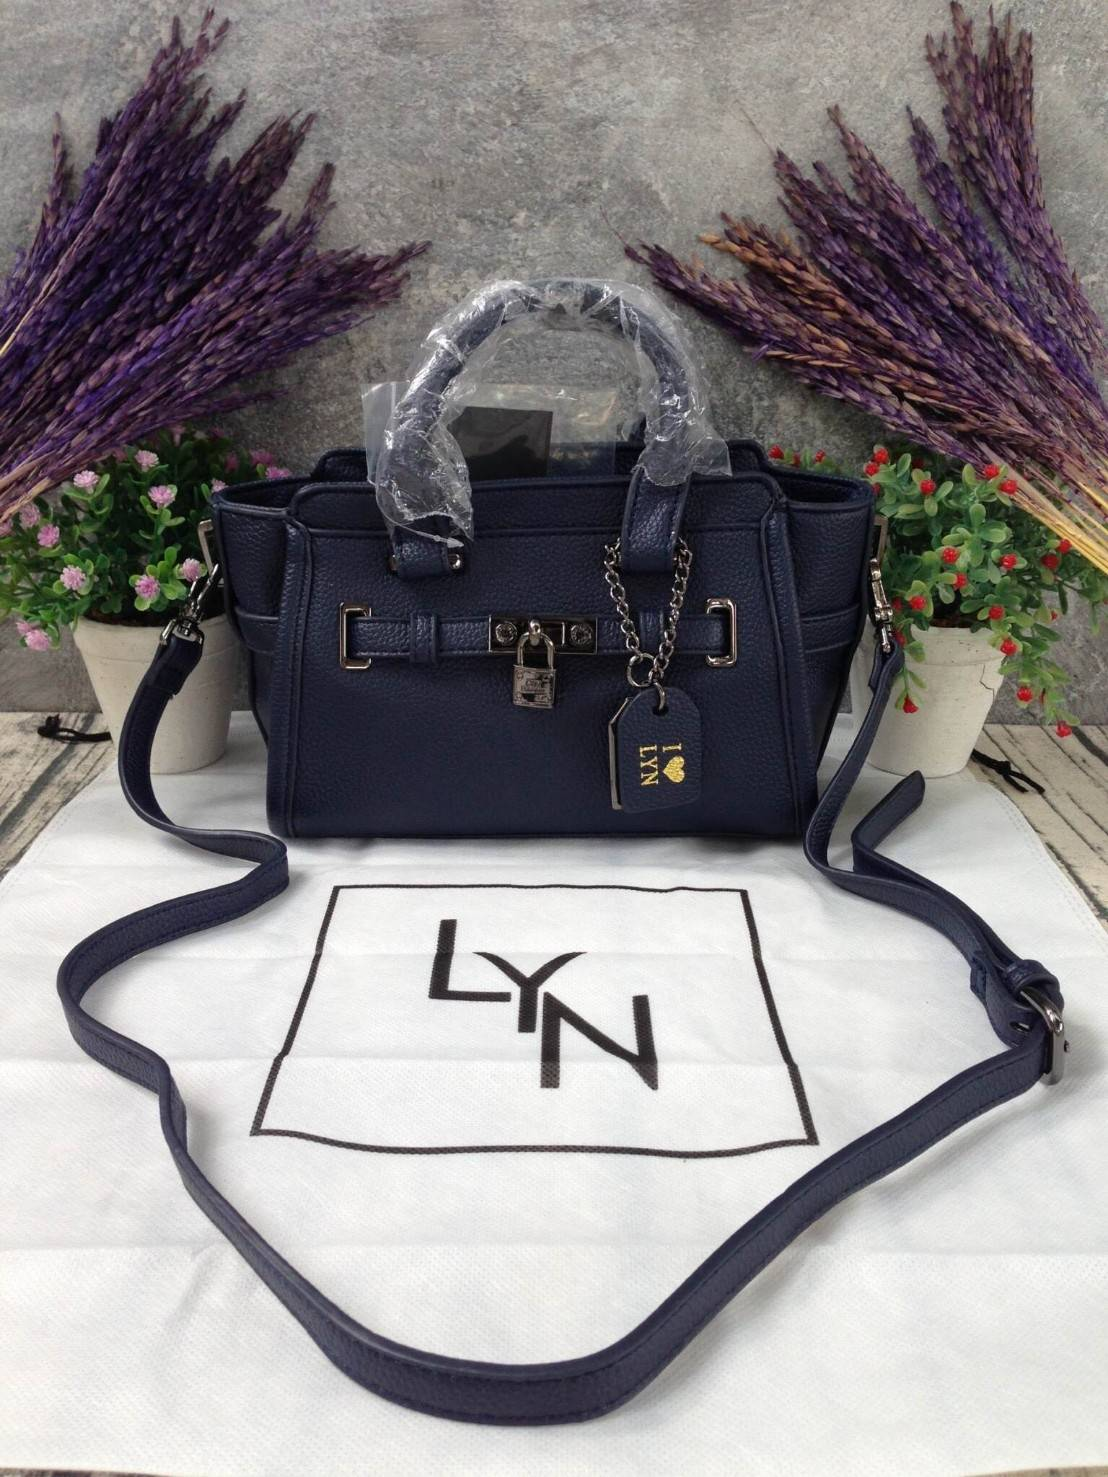 LYN Harmony S free ถุงผ้า *สินค้า Outlet